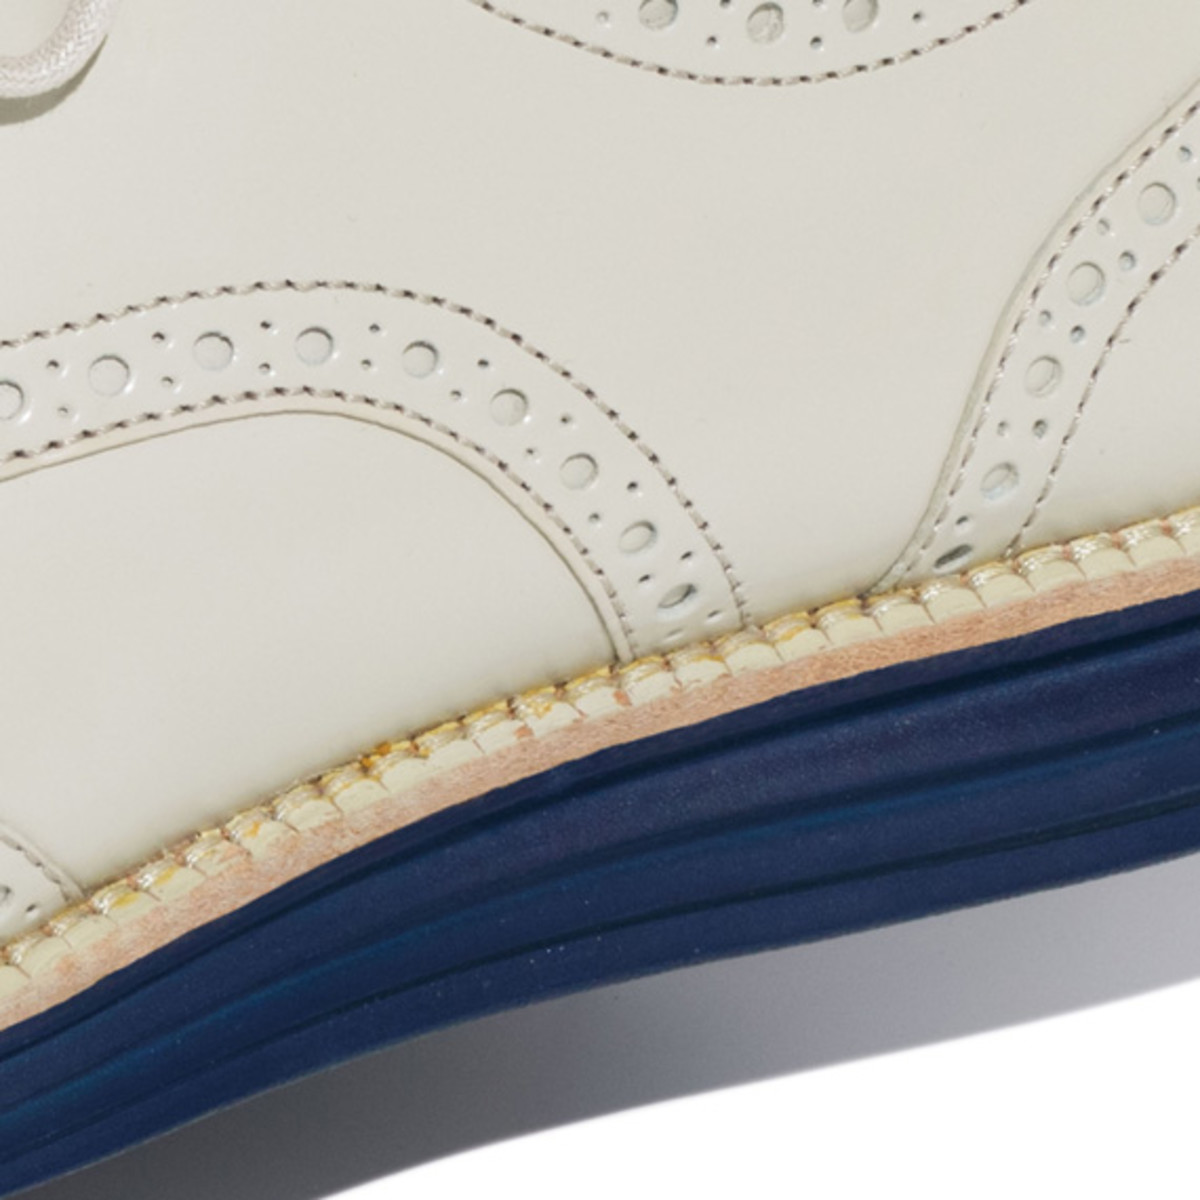 cole-haan-fragment-design-lunargrand-collection-014